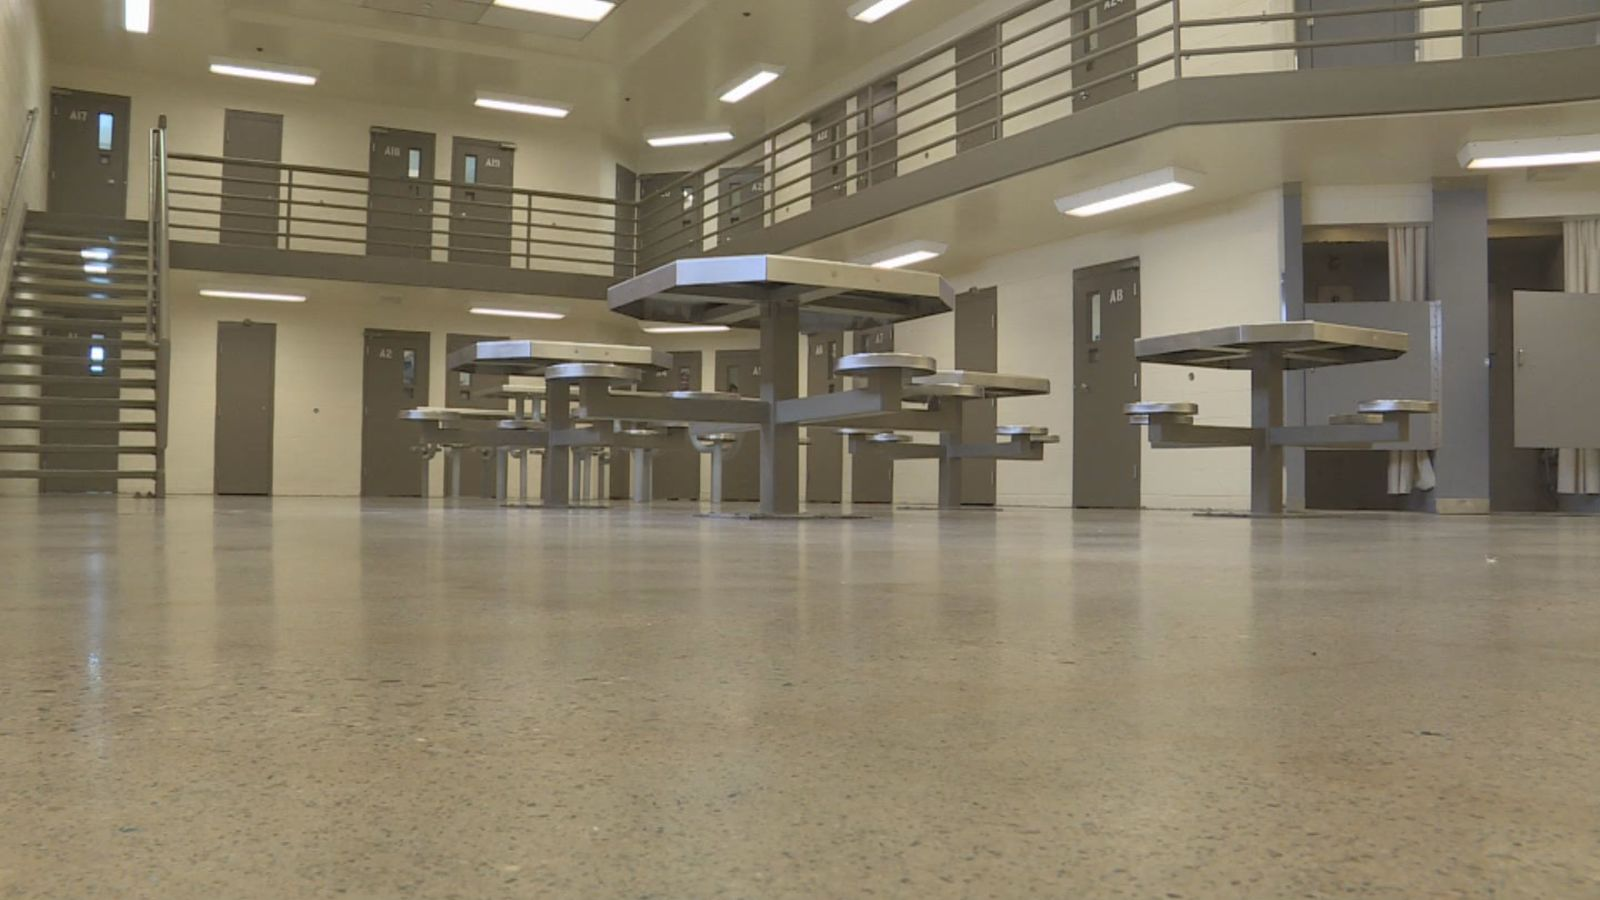 "A 36-year-old man died Tuesday while in the custody of the Davis County Sheriff's Office at the county jail, shown here.&nbsp;<a href=""https://kutv.com/news/local/davis-county-making-policy-changes-after-string-of-jail-deaths"" target=""_blank"" title=""https://kutv.com/news/local/davis-county-making-policy-changes-after-string-of-jail-deaths"">It is the tenth death there since 2016</a>. (File photo: KUTV)"